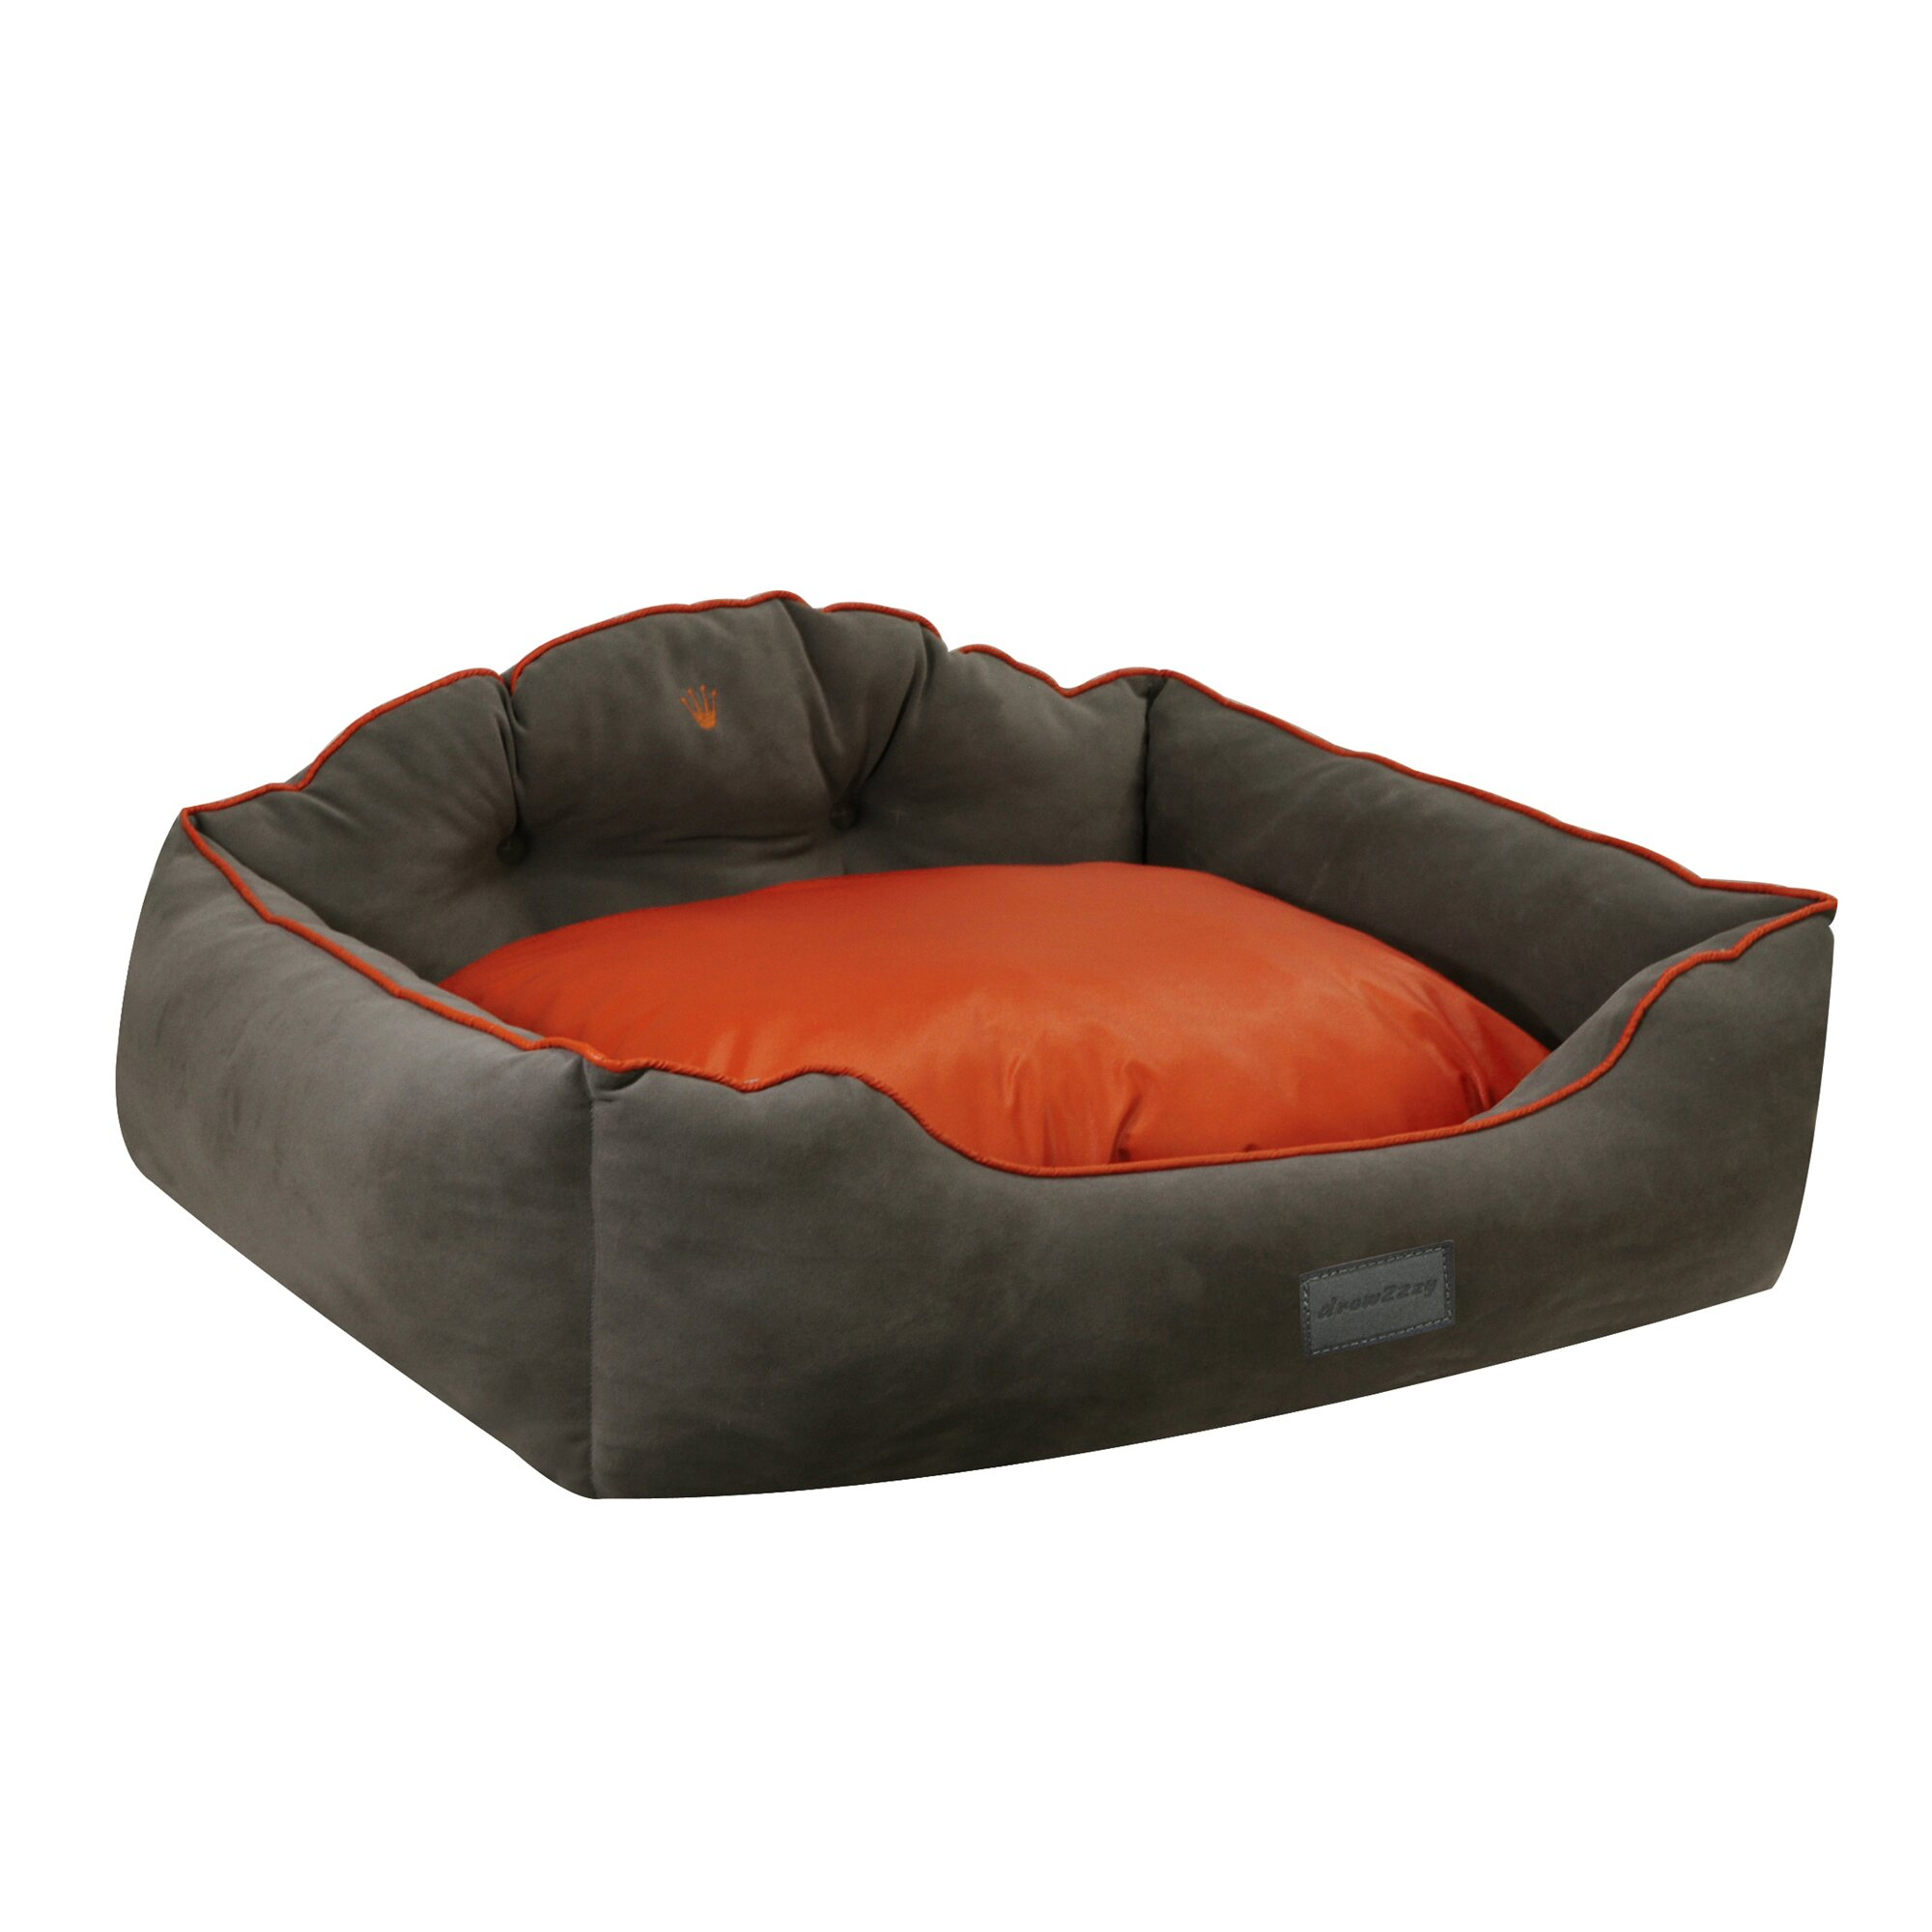 Ez Living Home Courtier Royal Couch Dog Bed Reviews